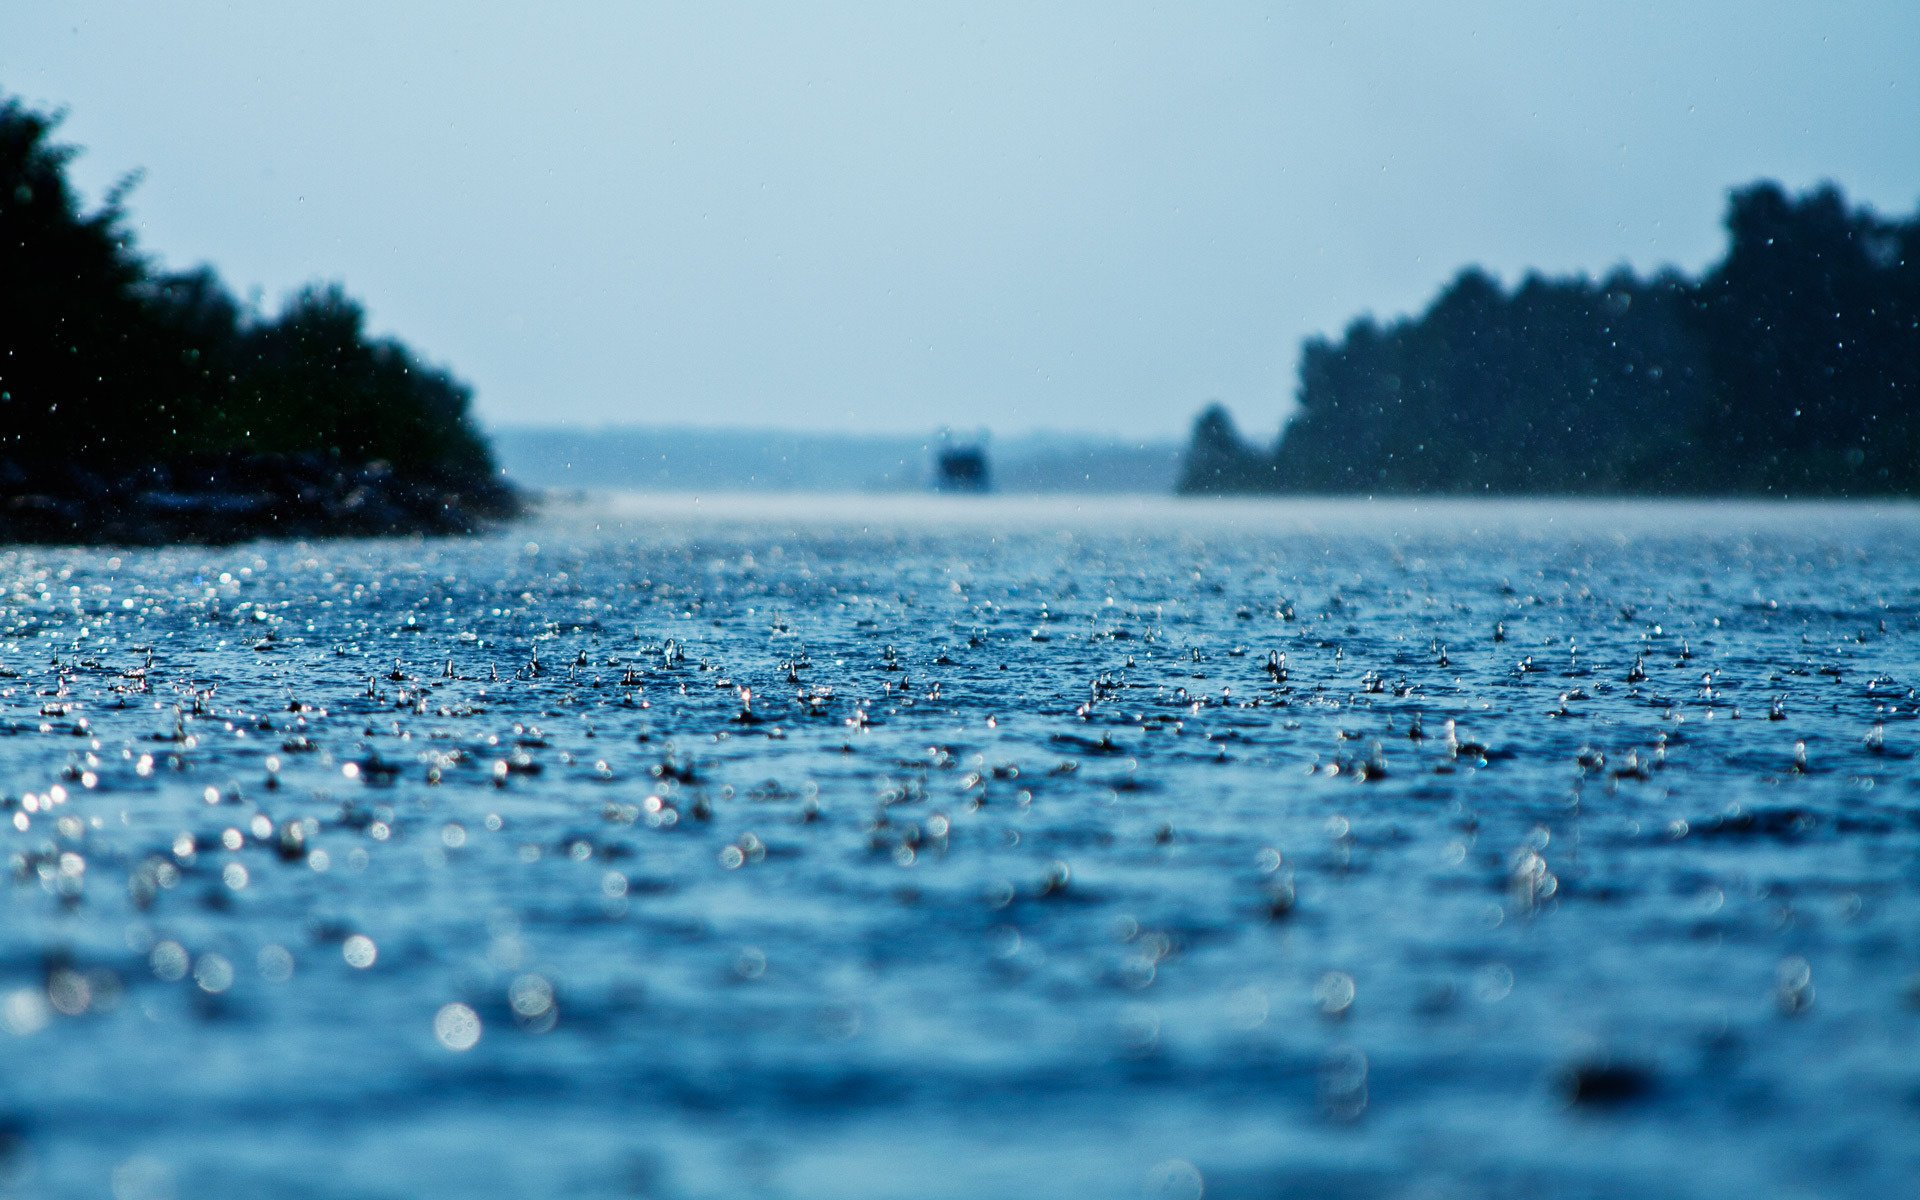 rain full hd wallpaper and background image | 1920x1200 | id:120313